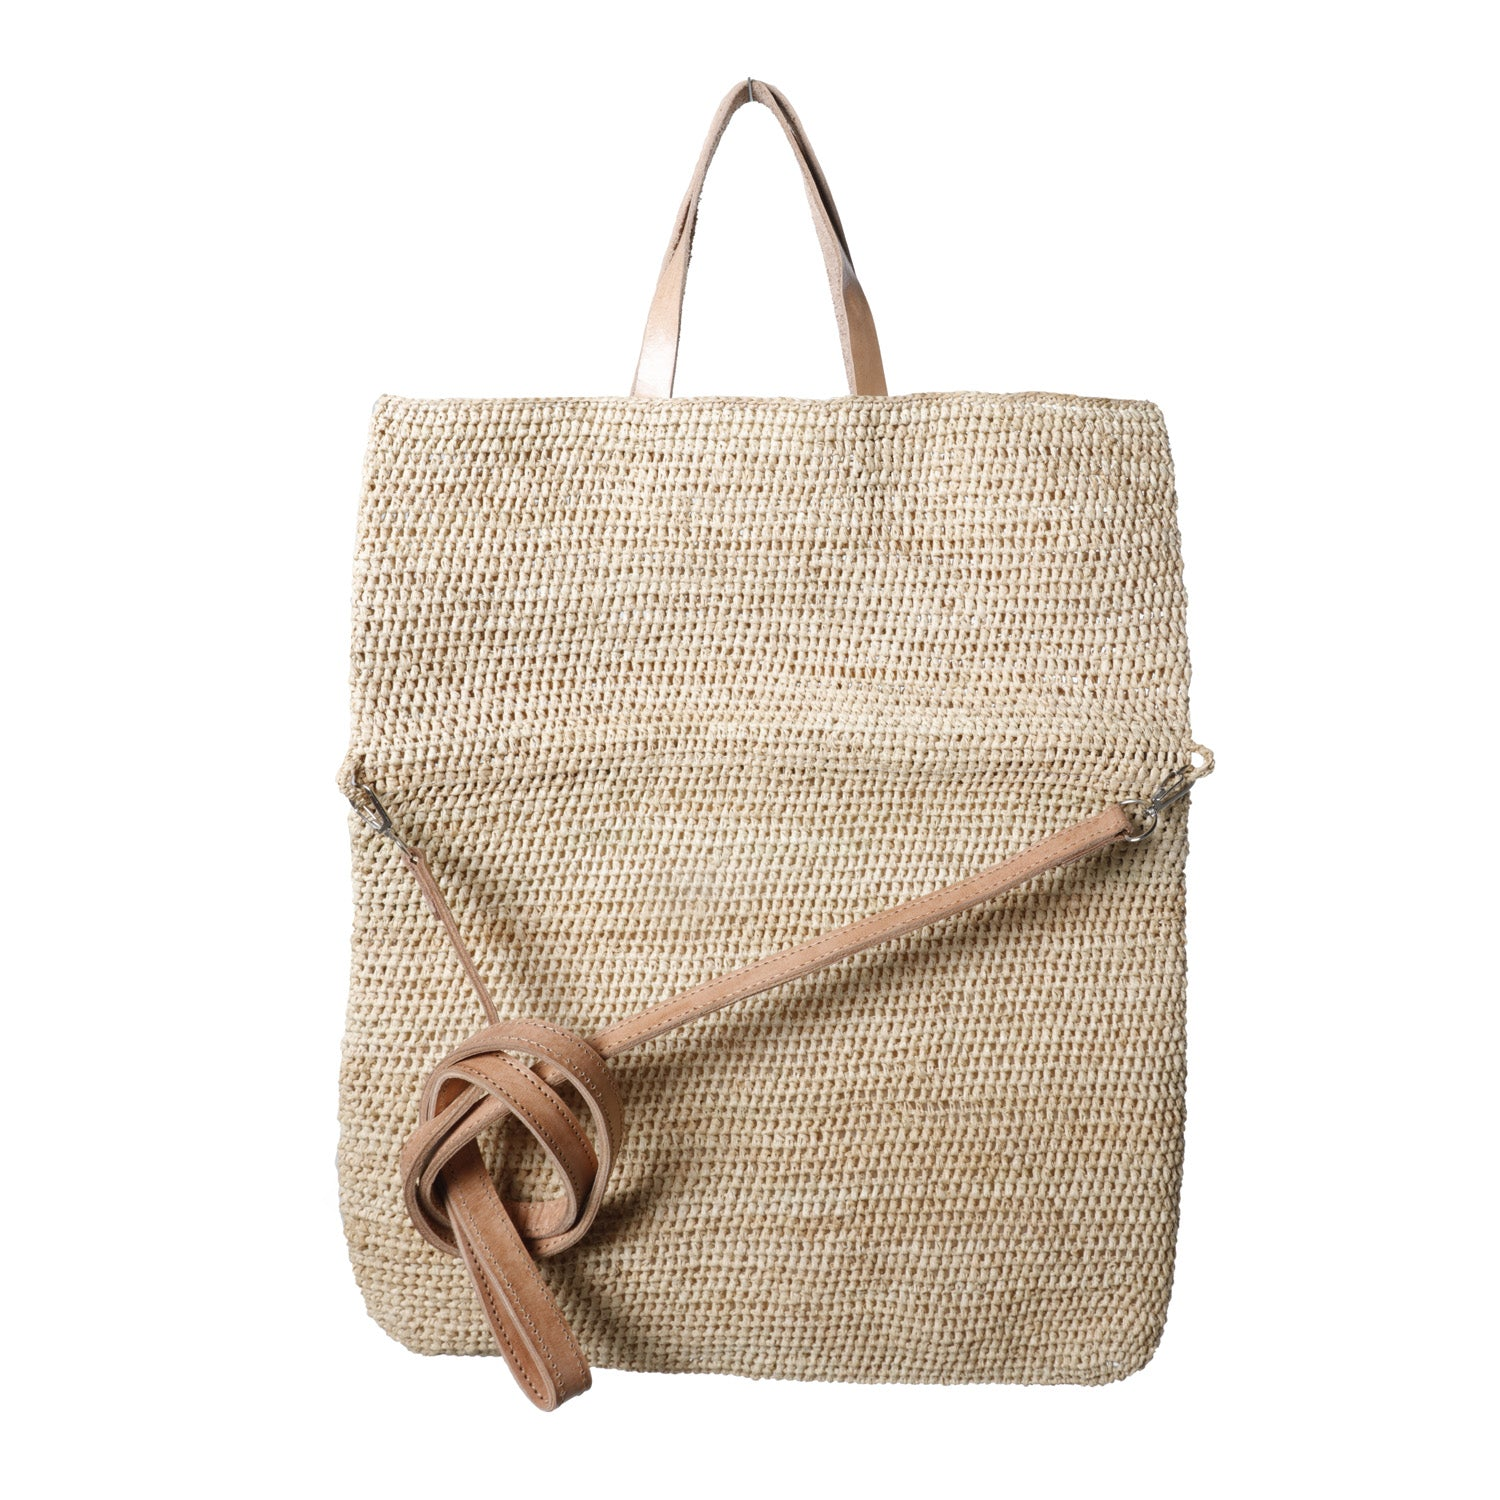 Emilie Tote/Crossbody Bag in Natural